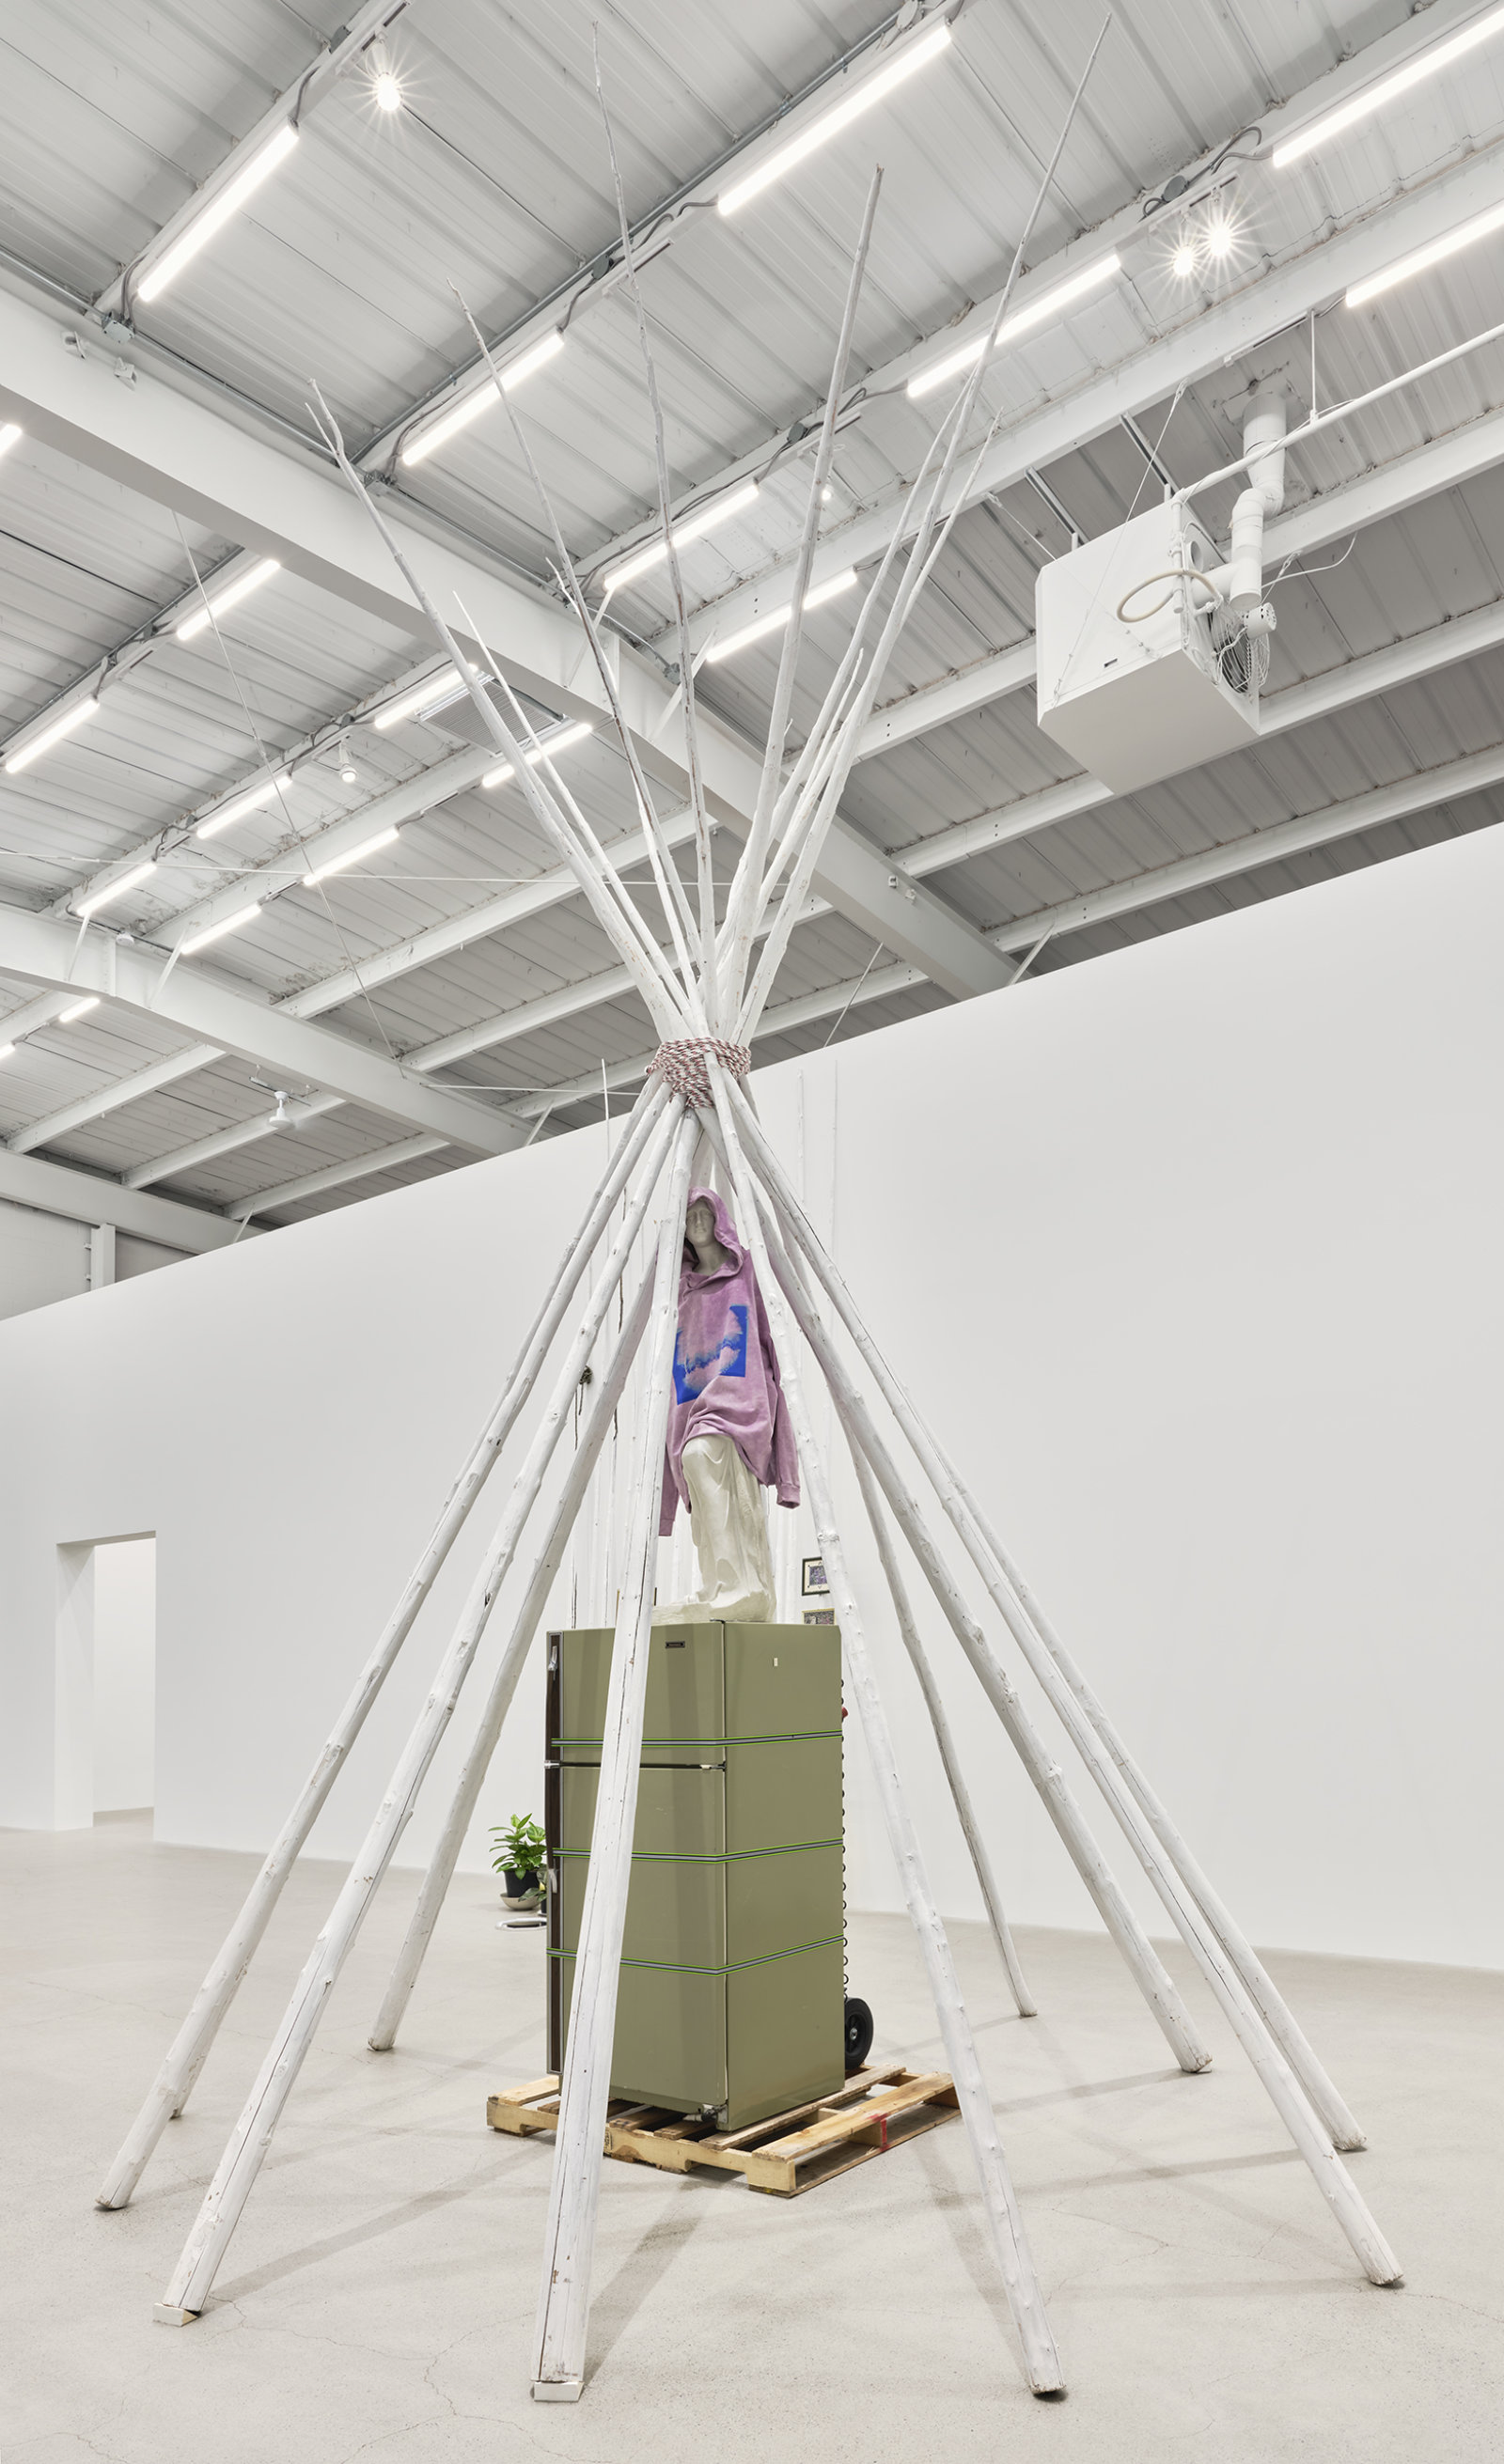 Duane Linklater, what grief conjures, 2020, teepee poles, paint, nylon rope, wooden pallet, refrigerator, tie-down straps, hand truck, plastic statue, handmade hoodie, cochineal dye, silkscreen, 249 x 160 x 160 in. (632 x 406 x 406 cm) by Duane Linklater